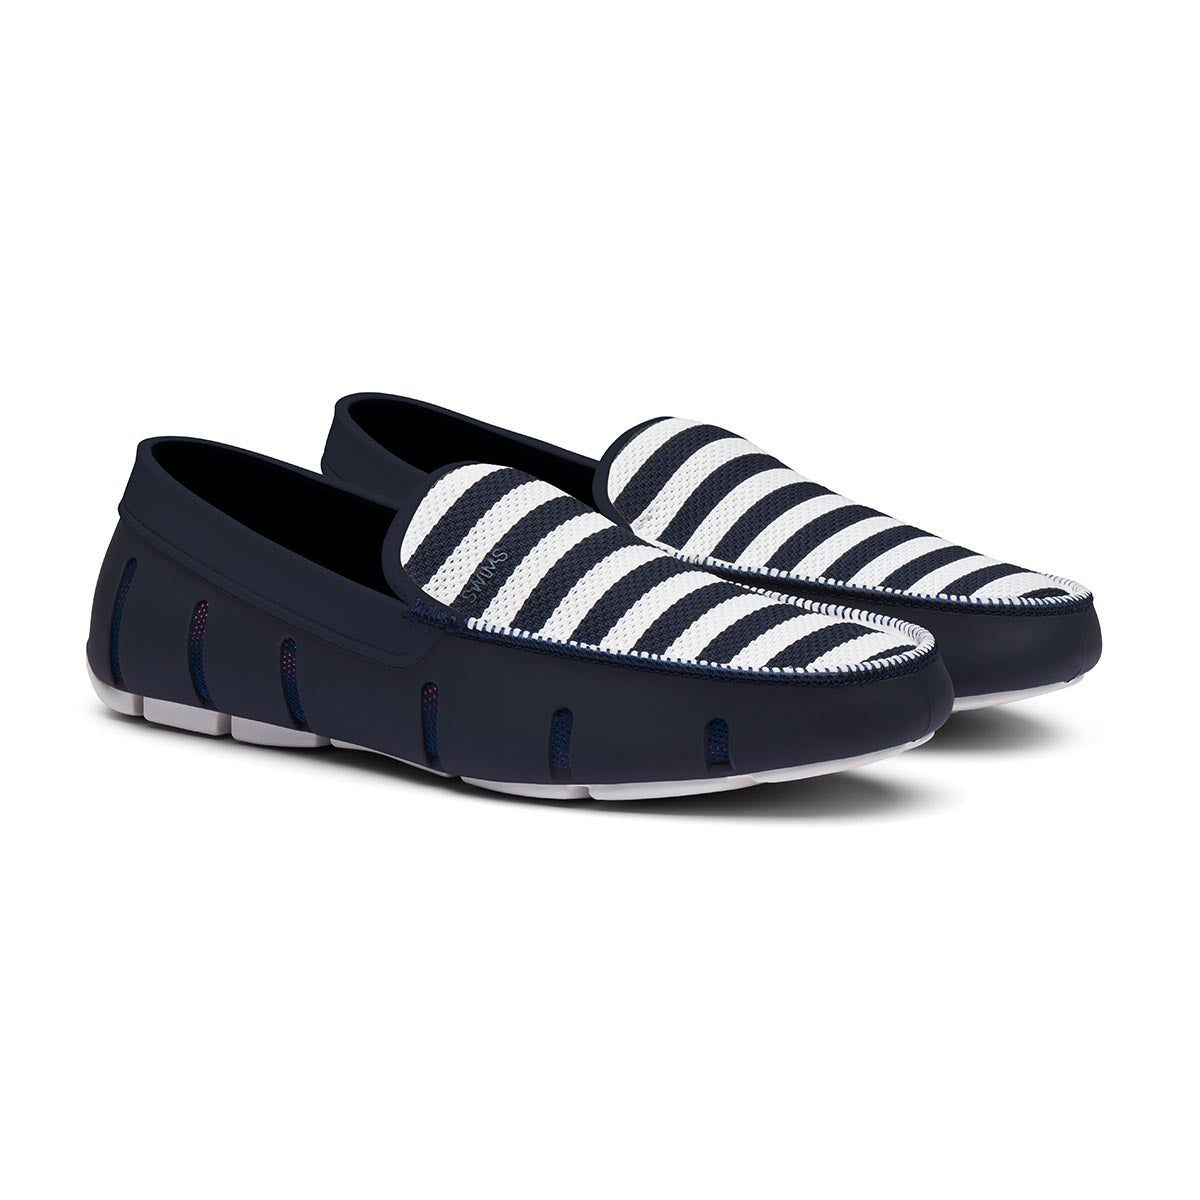 Striped Venetian Loafer - background::white,variant::Navy/White